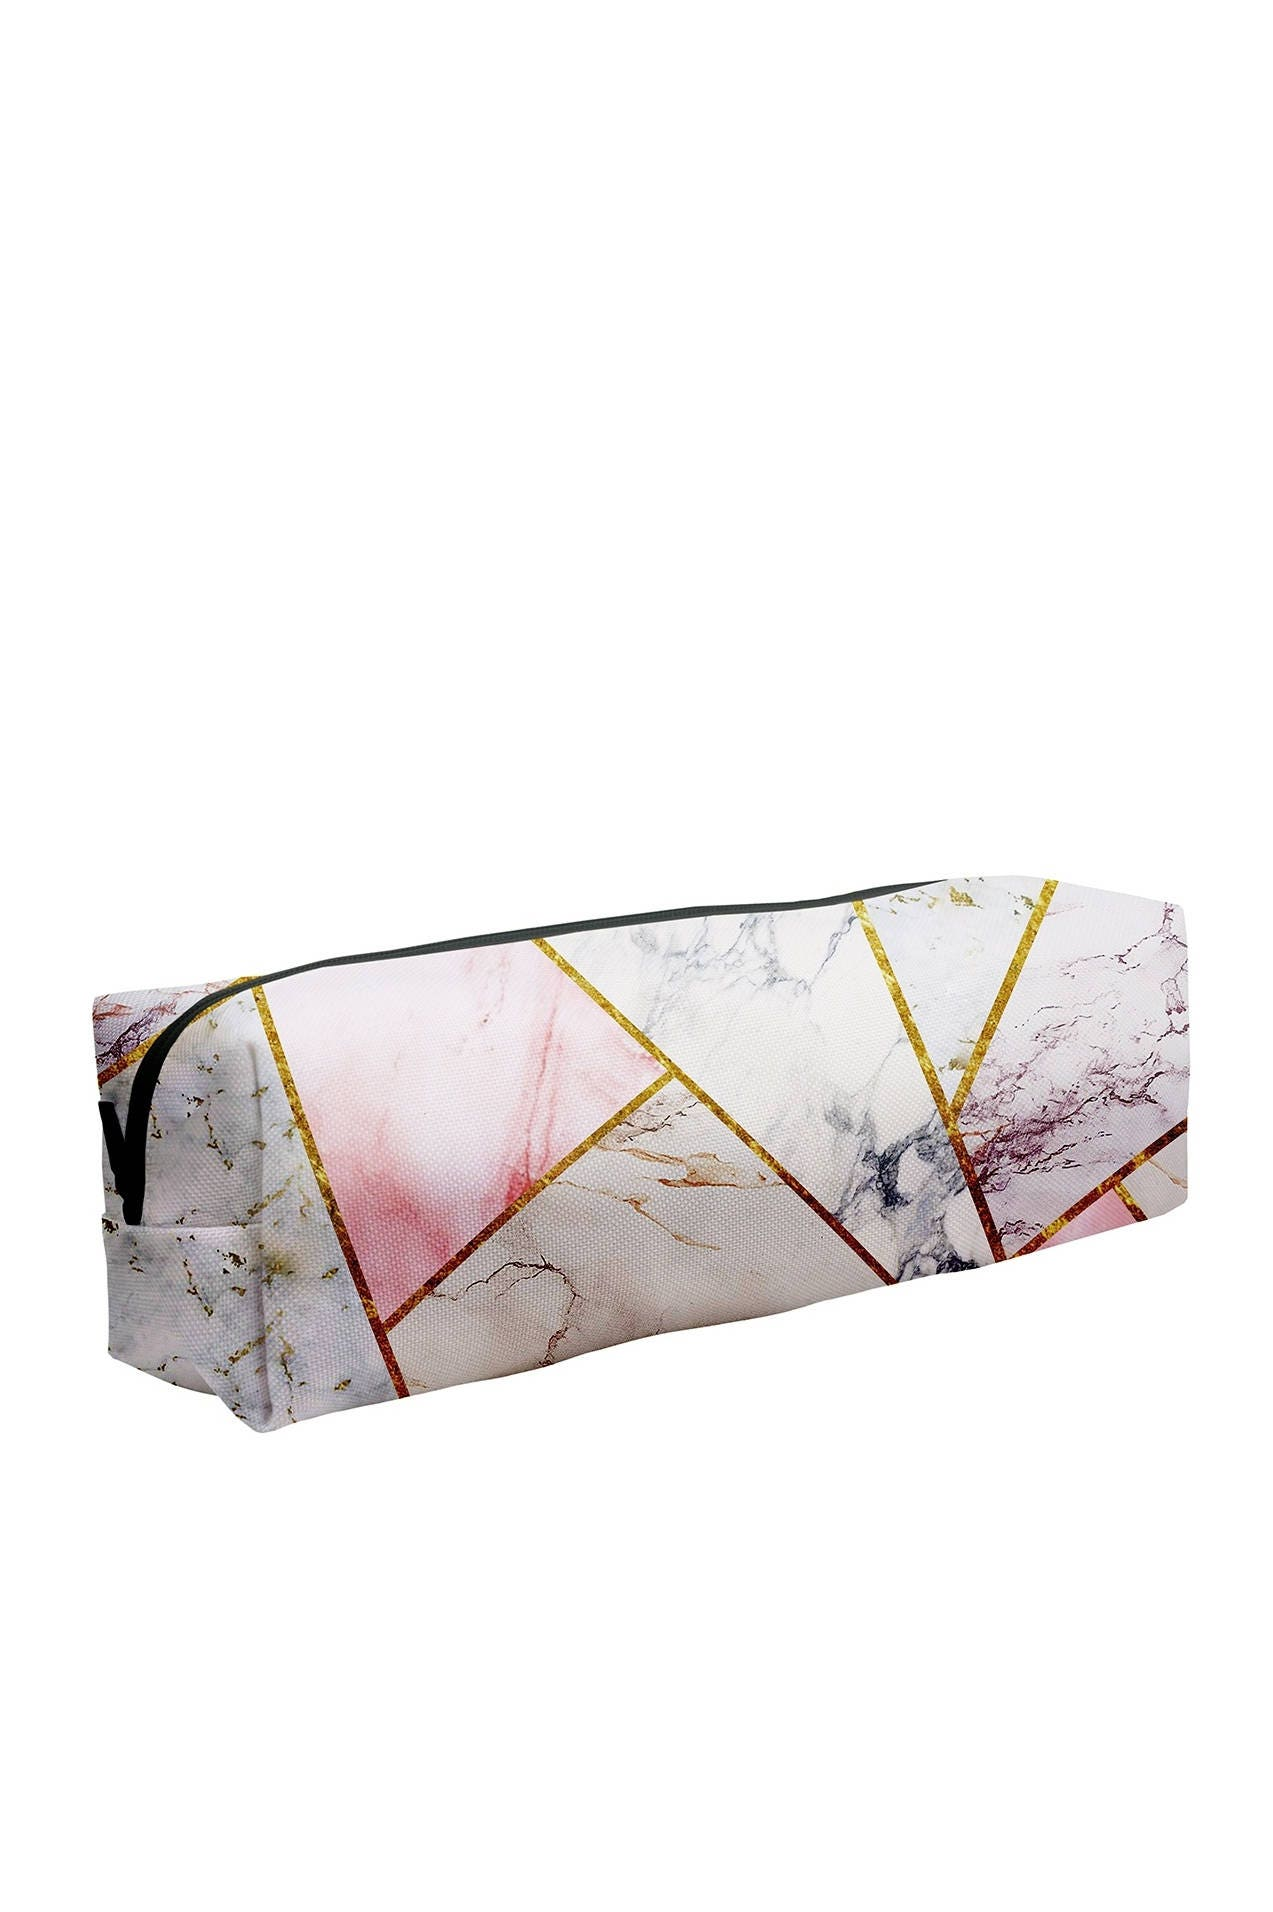 Marble Mix Pencil Pen Case Box Pencilcase School Tools Pocket